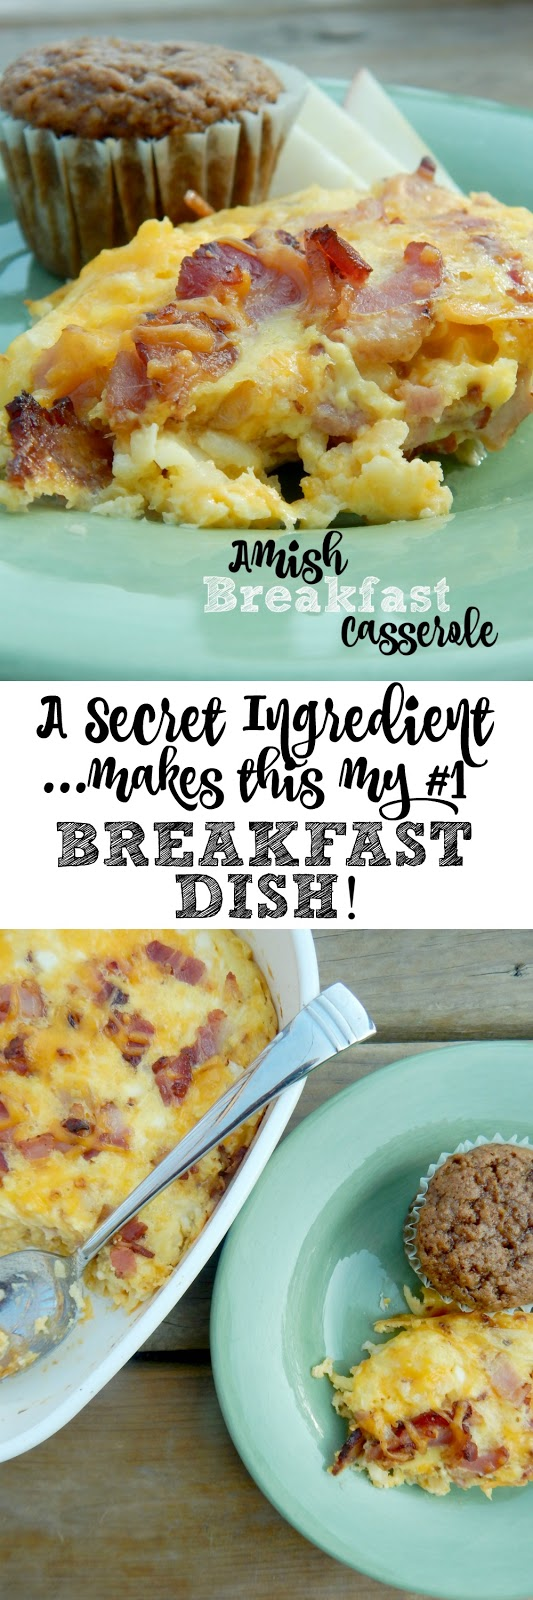 Amish Breakfast Casserole...the BEST baked egg dish EVER!  Can you guess the secret ingredient? (sweetandsavoryfood.com)